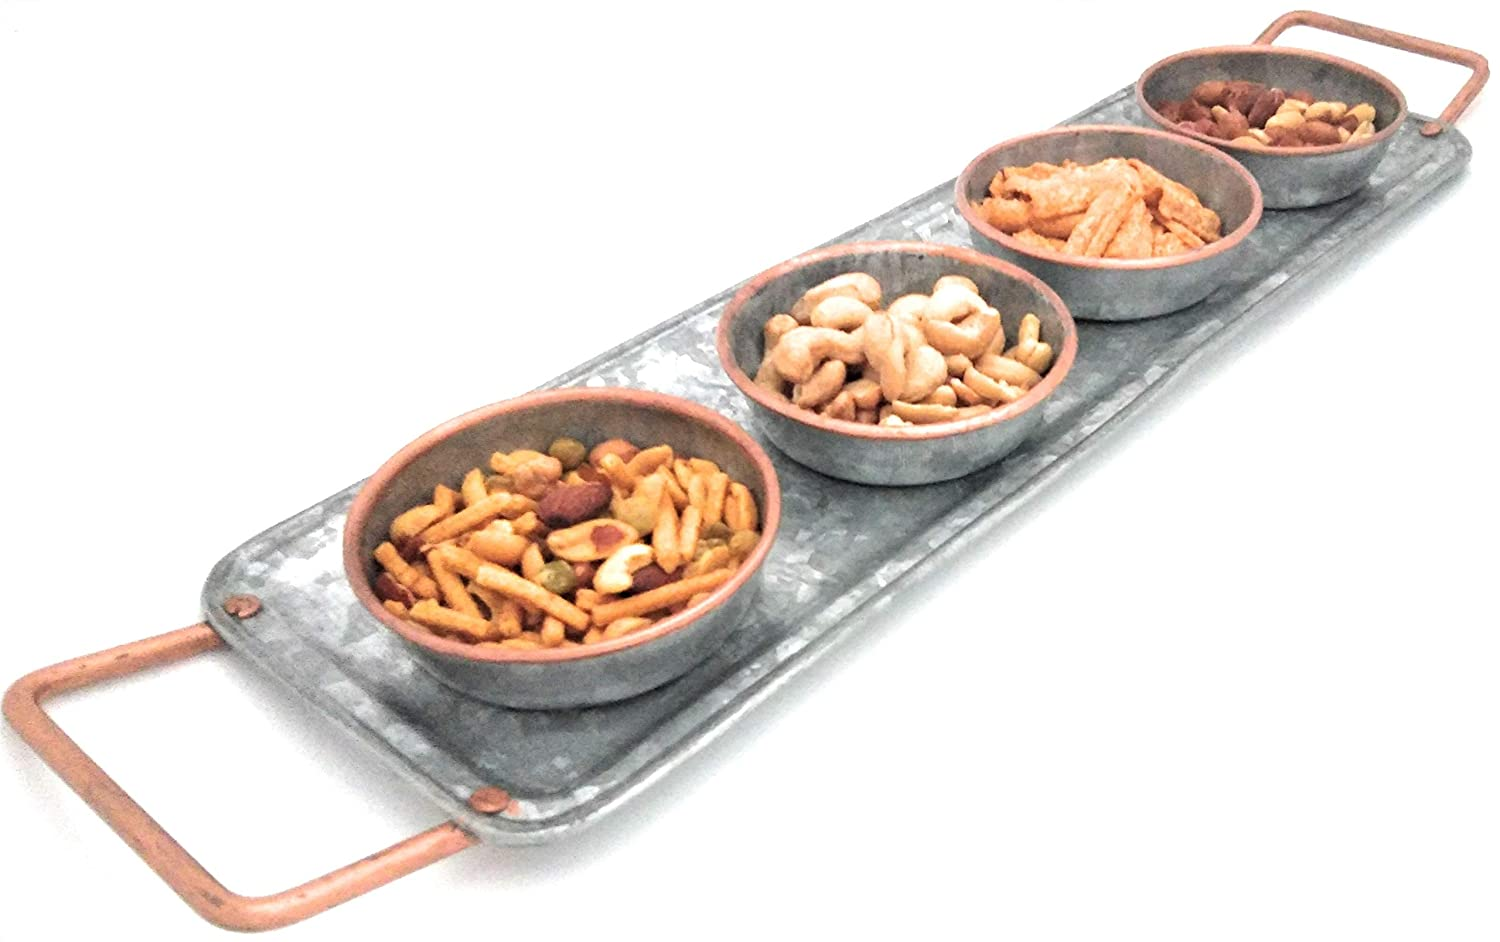 Galrose CONDIMENTS TRAY WITH 4 GALVANIZED IRON SERVING-ENTERTAINING DISHES for Nuts Chips Dips Snacks Candy Jams Sauces Pickles with Rose Gold Lip Gift Idea for 6th Wedding Anniversary